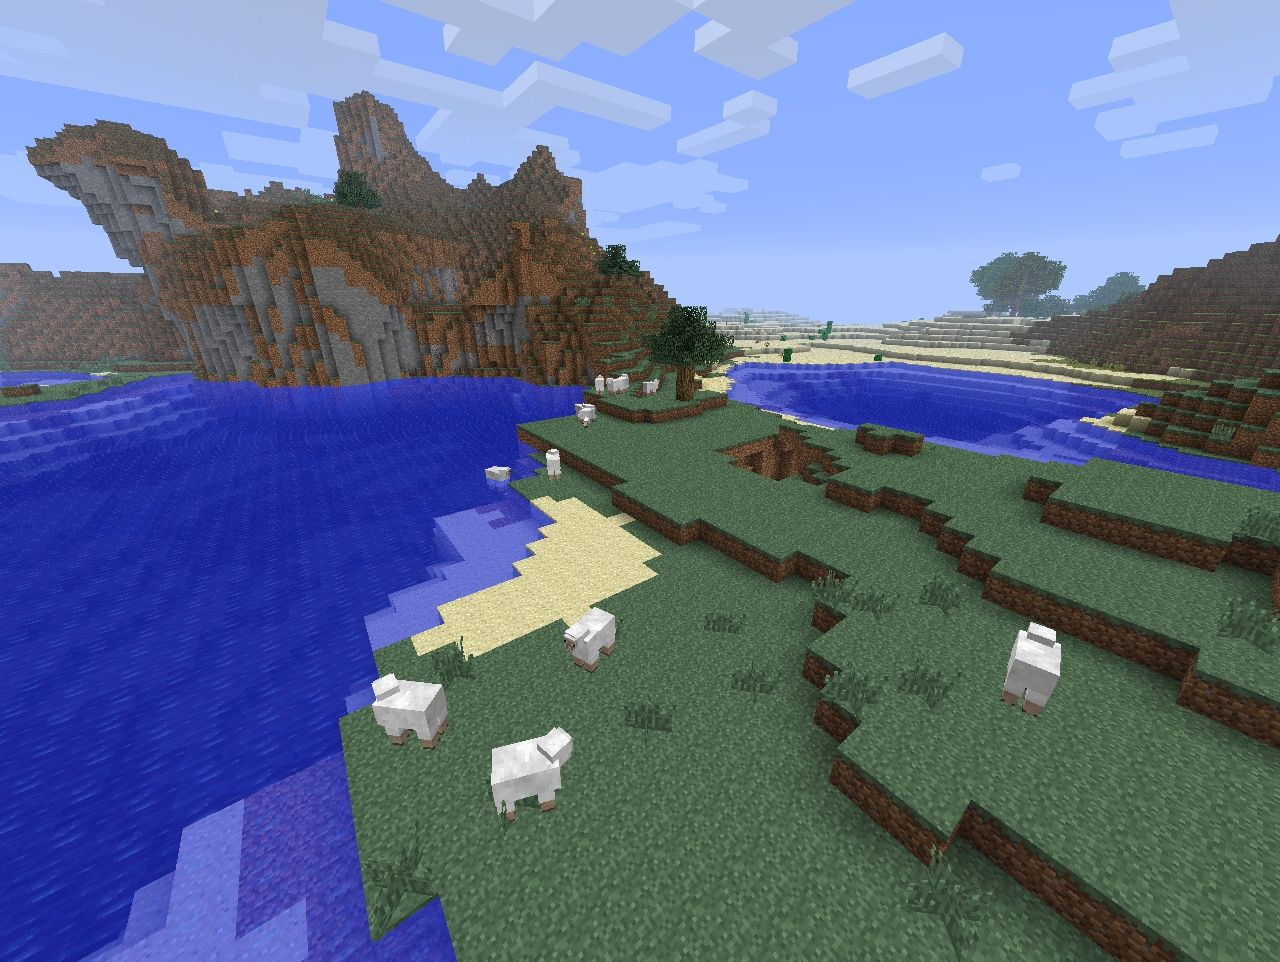 SHEEPS EVERYWHERE!